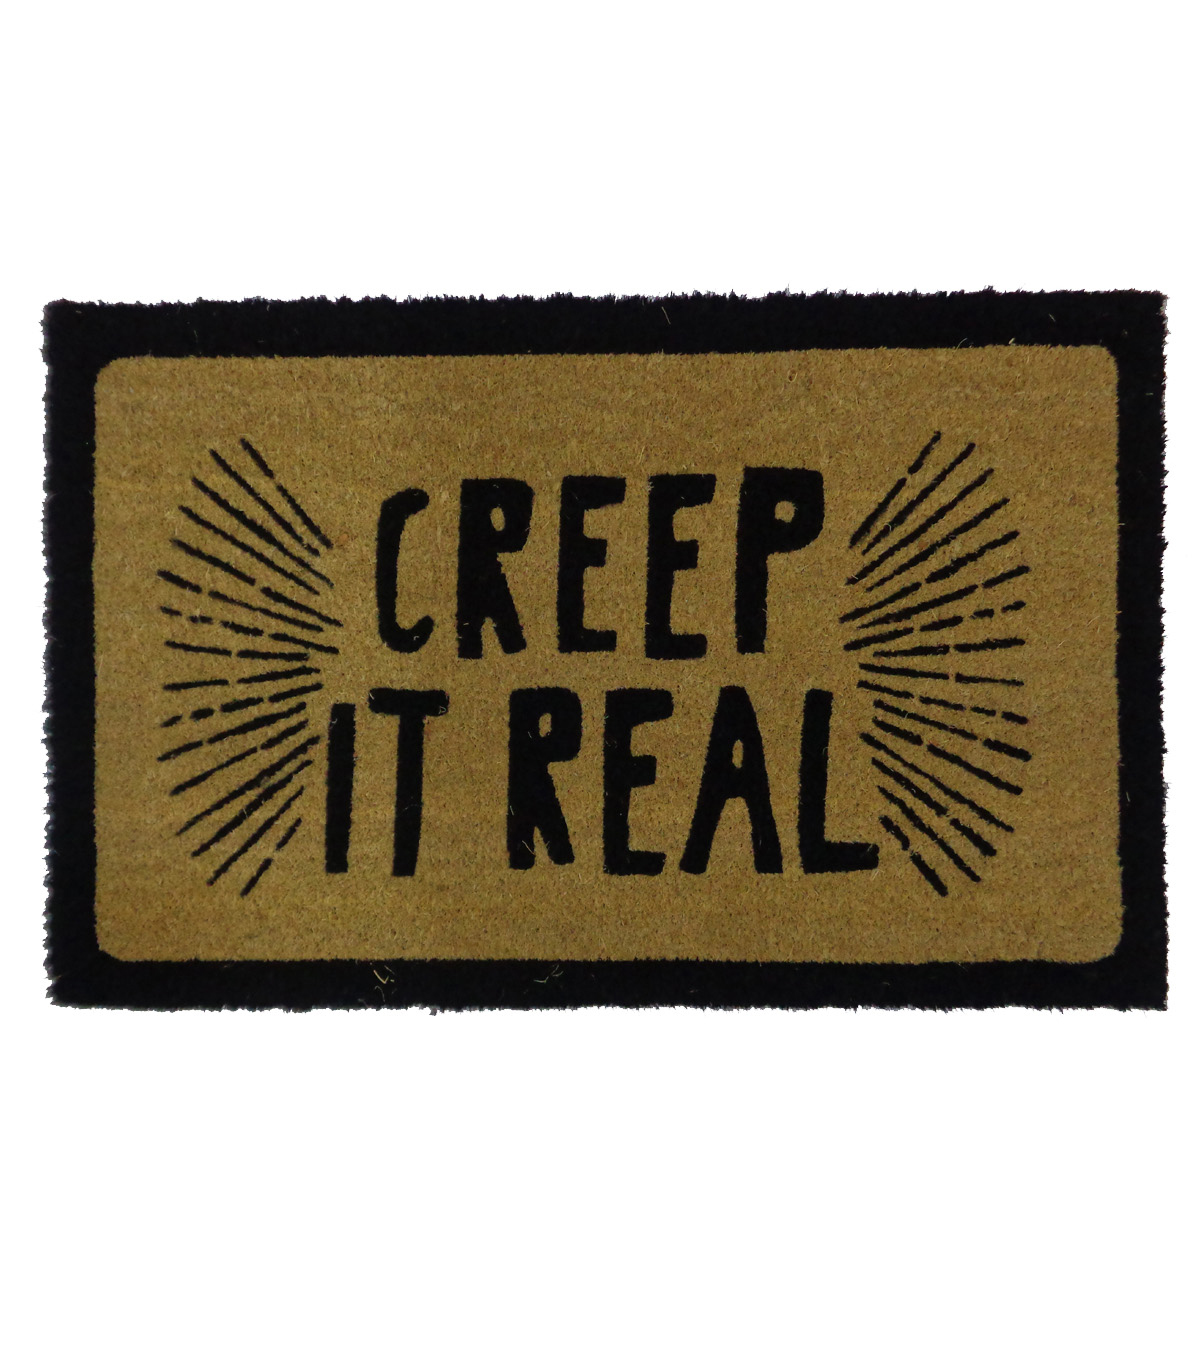 Maker's Halloween Coir Mat Creep It Real                      Maker's Halloween Coir Mat Creep It Real by Maker's Halloween